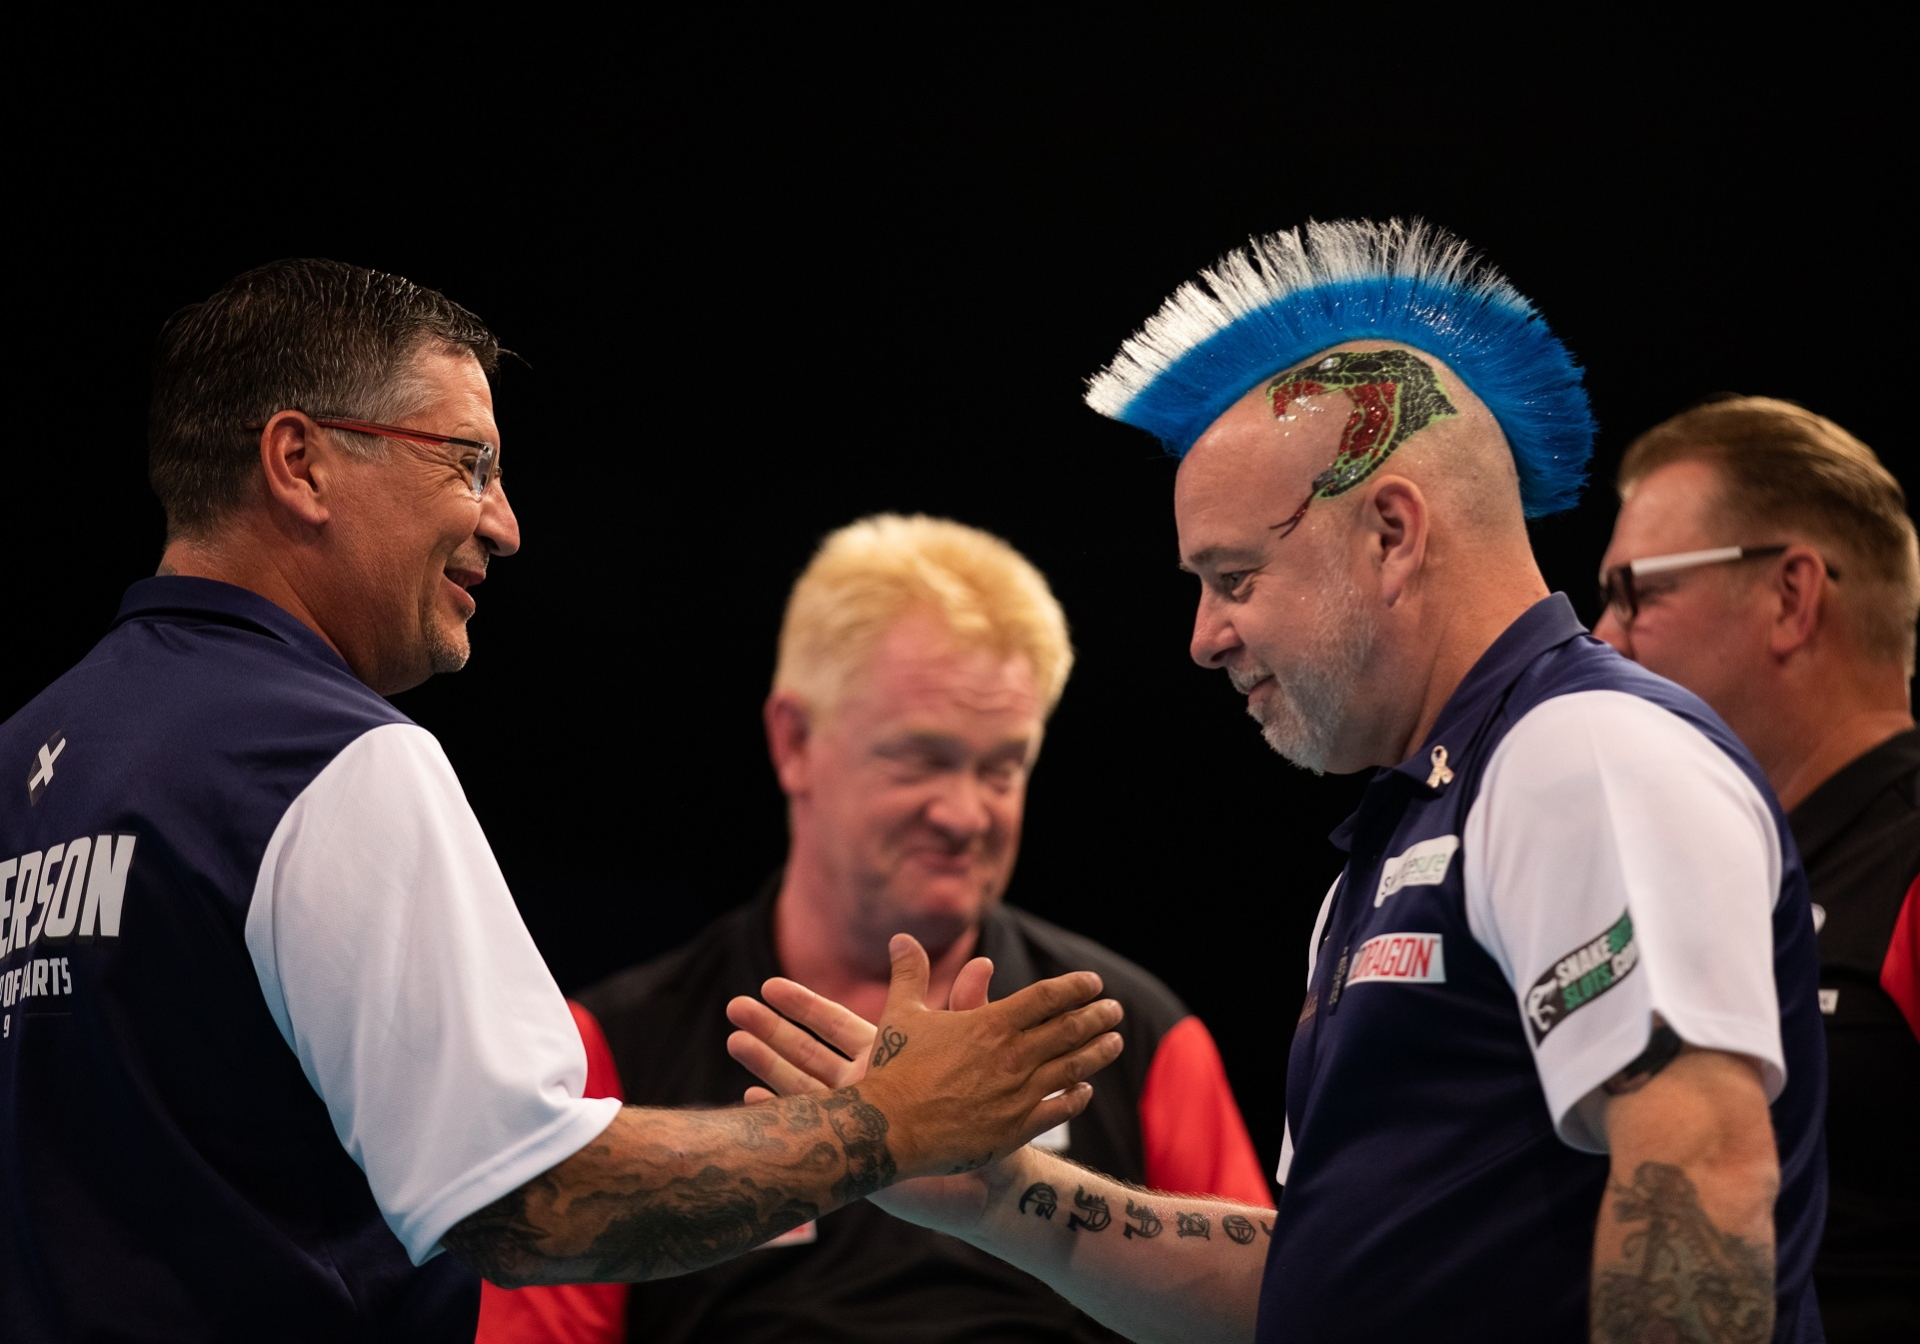 Gary Anderson & Peter Wright